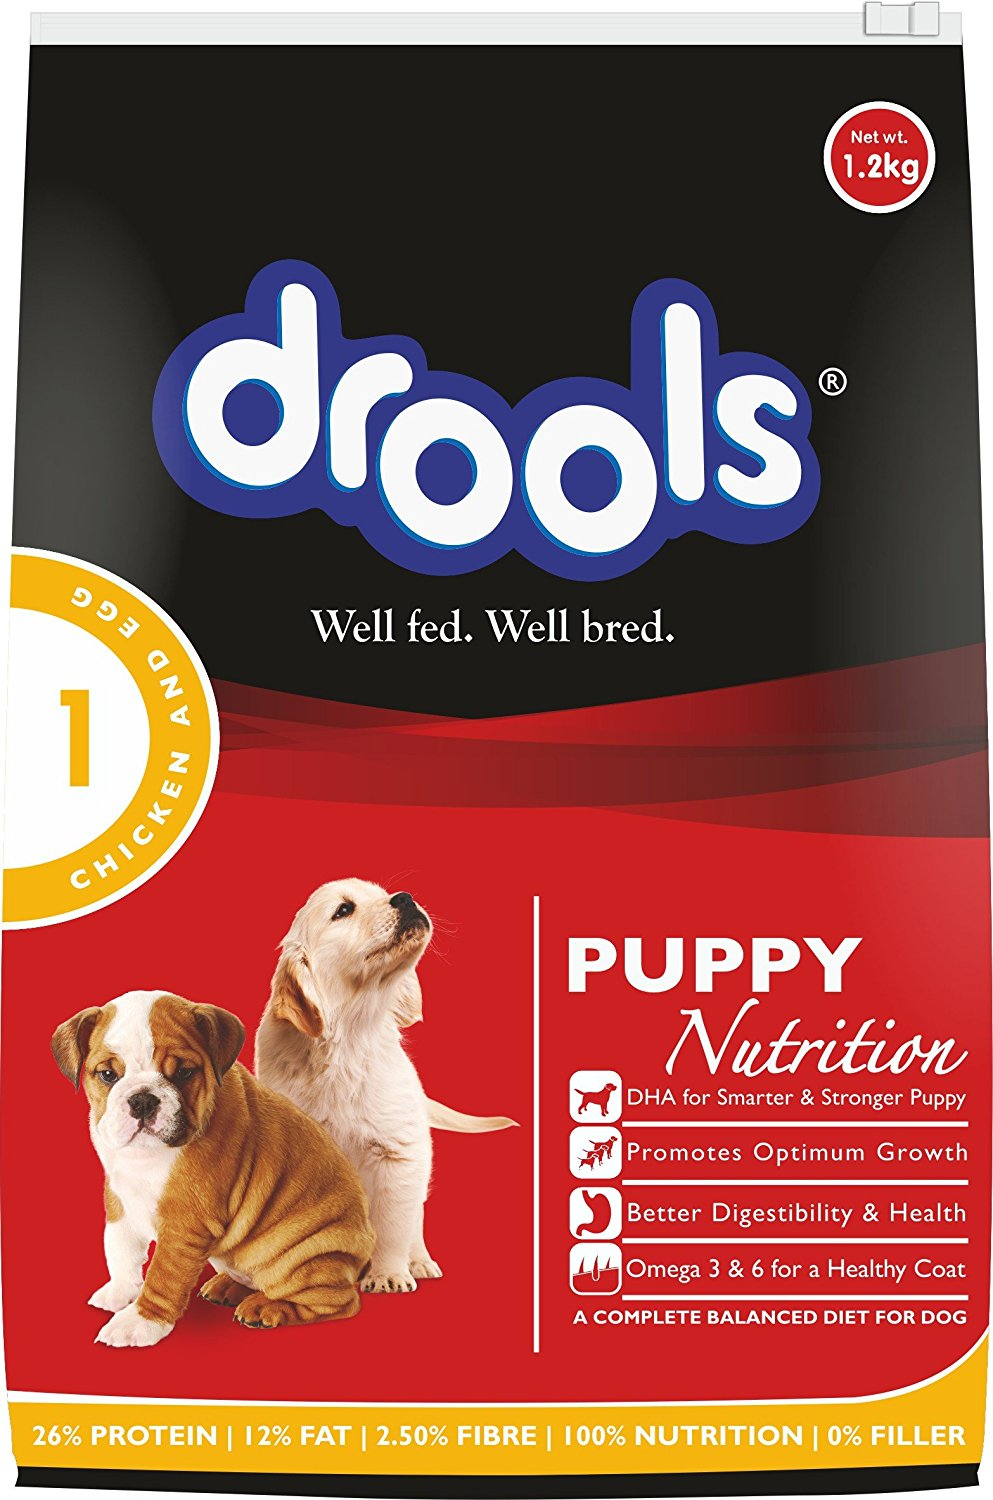 Drools Chicken and Egg Puppy - 1.2 kg